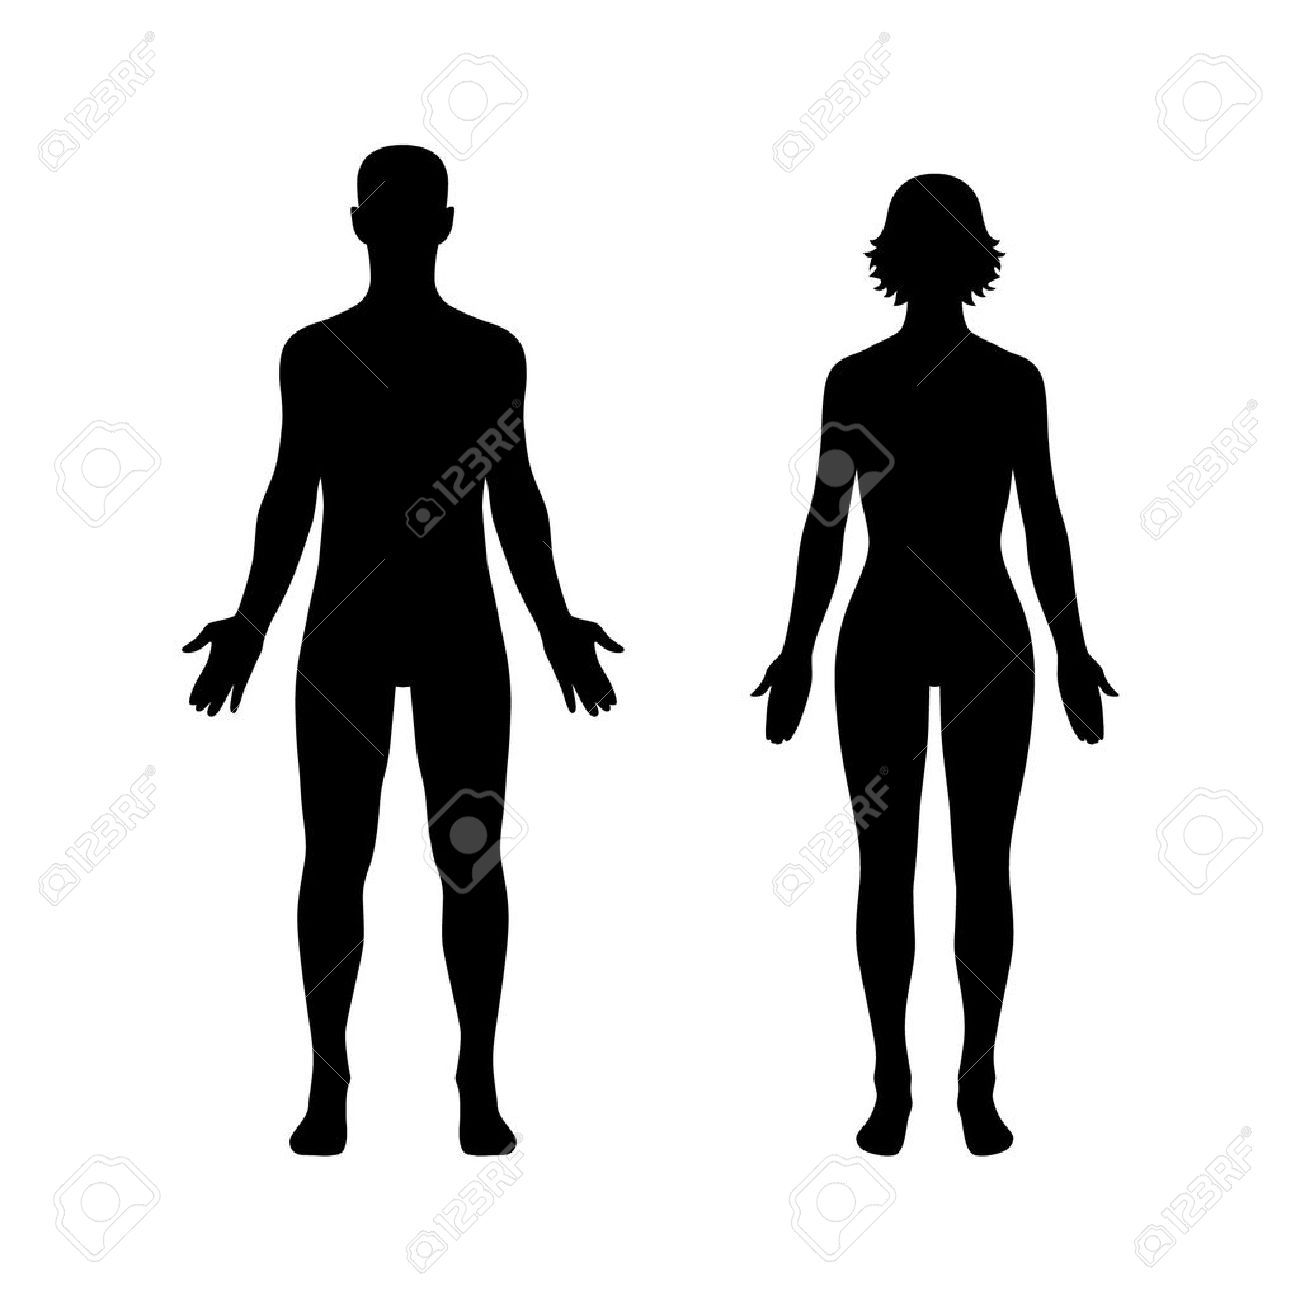 Man And Woman Human Body Flat Icon For App And Website Royalty Flat Icon Human Body Human Silhouette